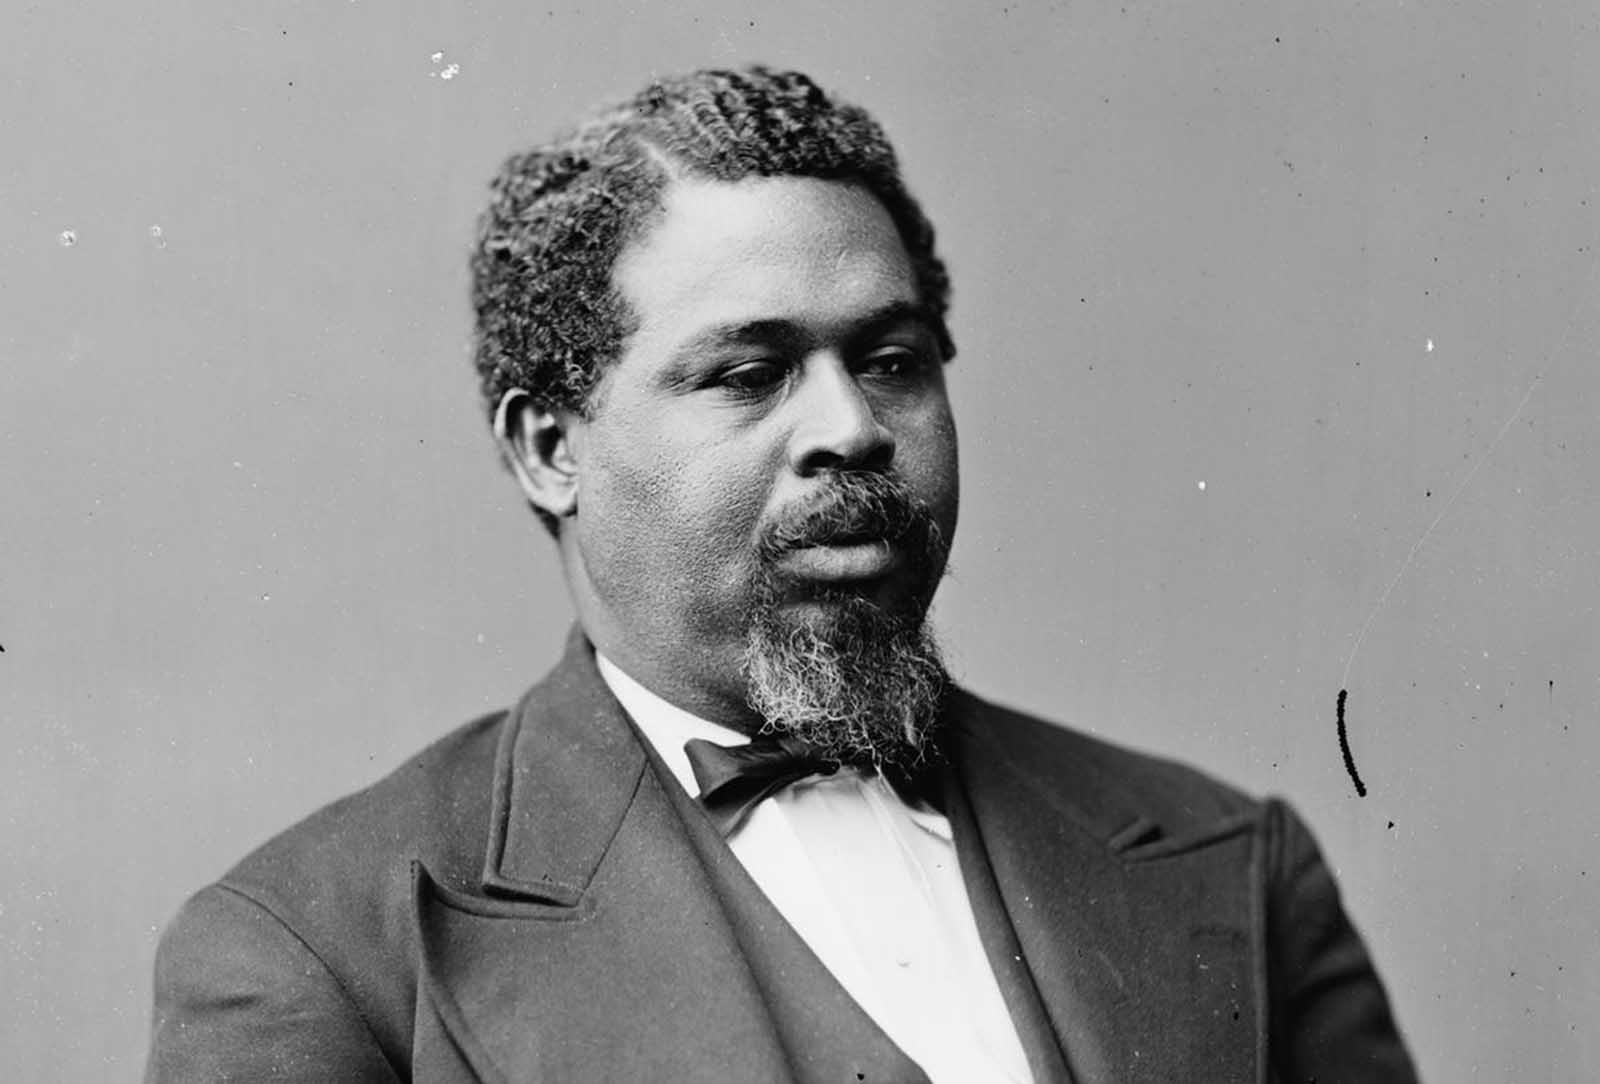 Robert Smalls was born a slave in South Carolina. During the Civil War, Smalls steered the CSS Planter, an armed Confederate military transport. On May 12, 1862, the Planter's three white officers decided to spend the night ashore. About 3 am, Smalls and seven of the eight enslaved crewmen decided to make a run for the Union vessels that formed the blockade, as they had earlier planned. Smalls dressed in the captain's uniform and had a straw hat similar to that of the white captain. The Planter stopped at a nearby wharf to pick up Smalls' family and the relatives of other crewmen, then they sailed toward Union lines, with a white sheet as a flag. After the war, he went on to serve in the United States House of Representatives, representing South Carolina.